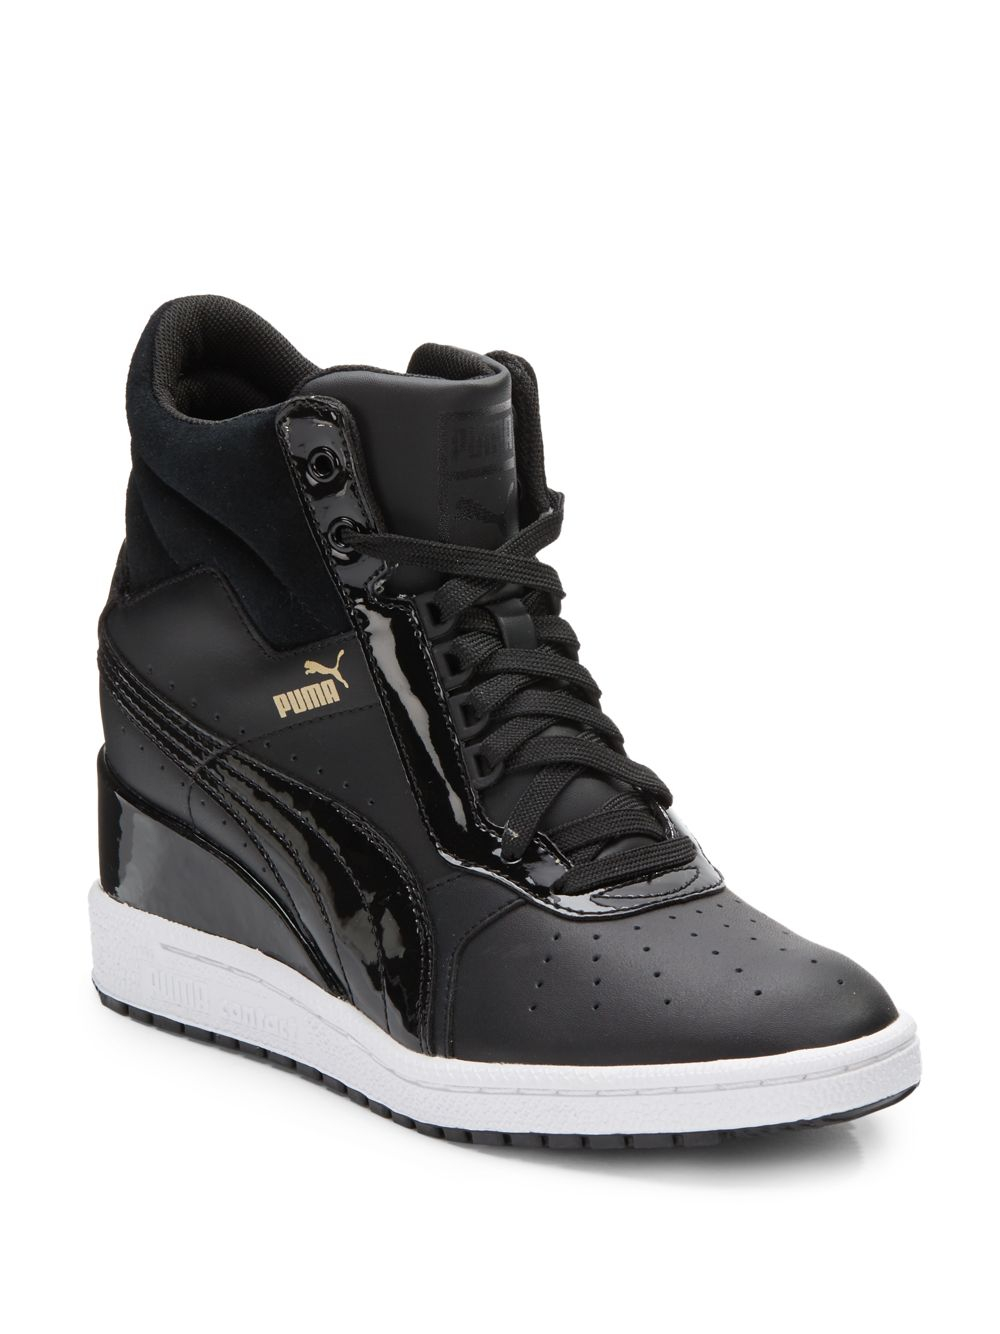 a4461e5a2b0d Lyst - PUMA Advantage Leather Wedge Sneakers in Black